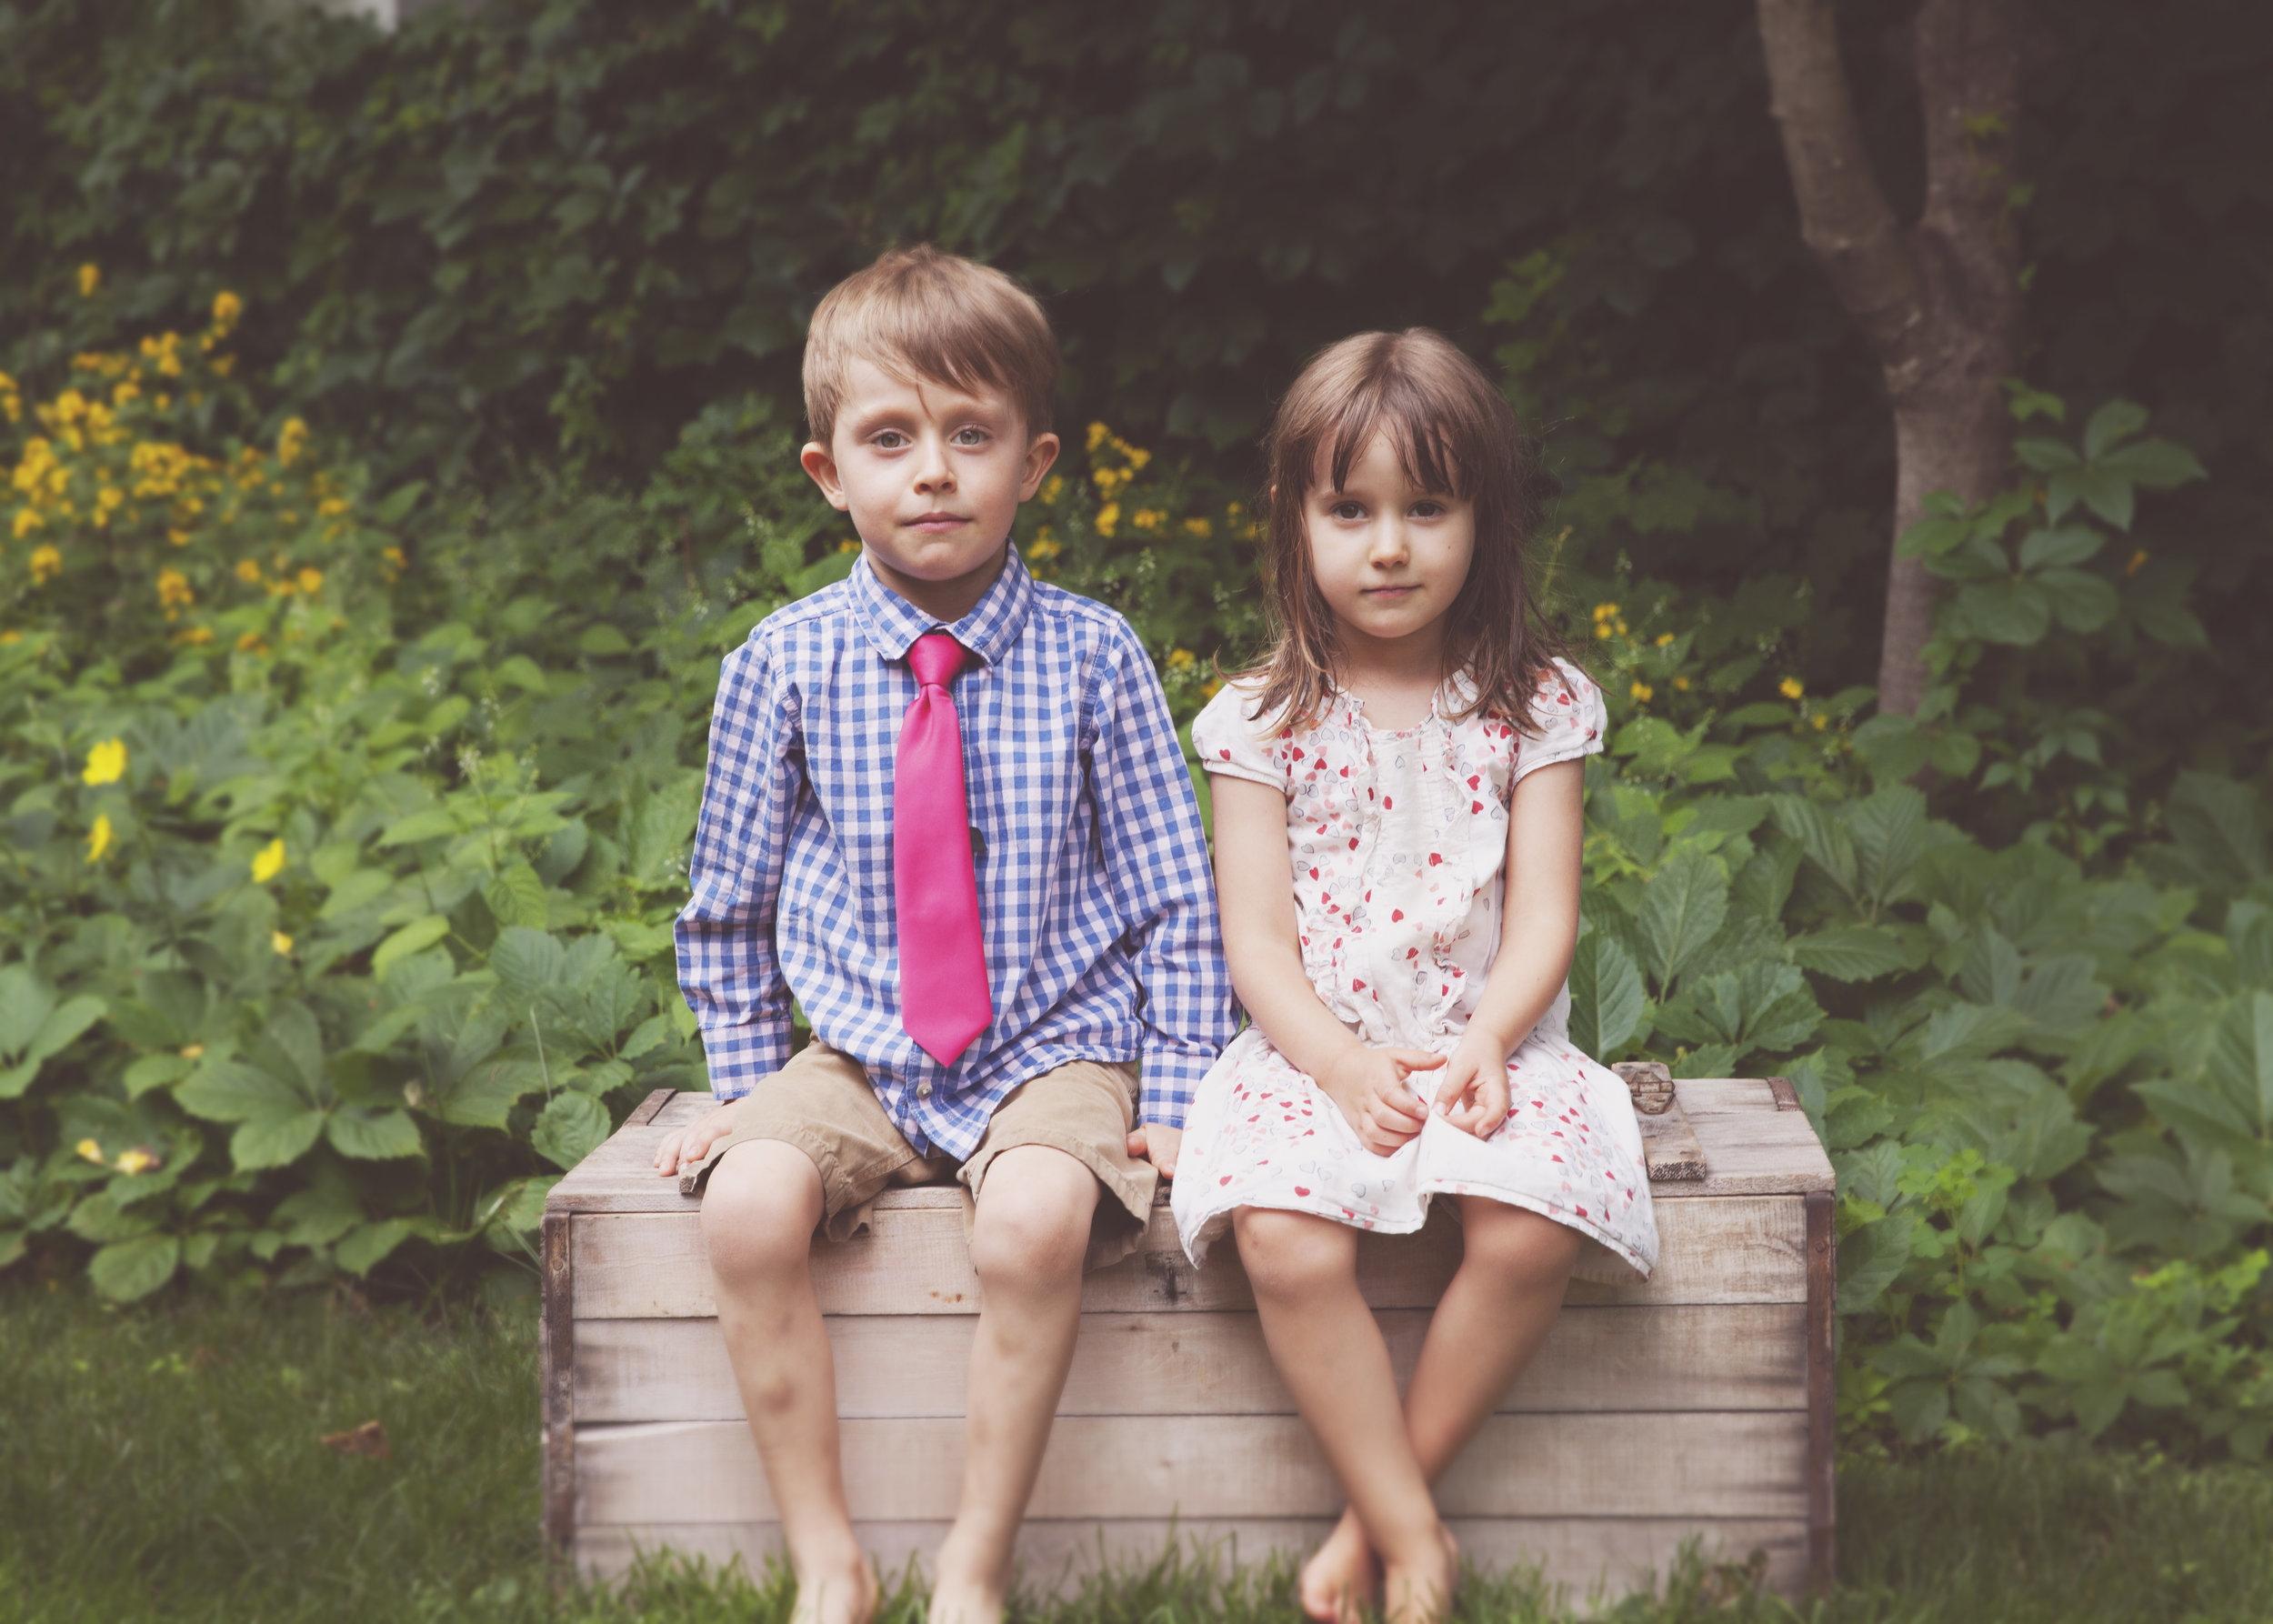 """This photo was taken at the 50th wedding anniversary. I brought this old trunk and it became the more """"posed"""" photo spot. The rest of the celebration were candid shots, that demonstrated emotion and joy."""